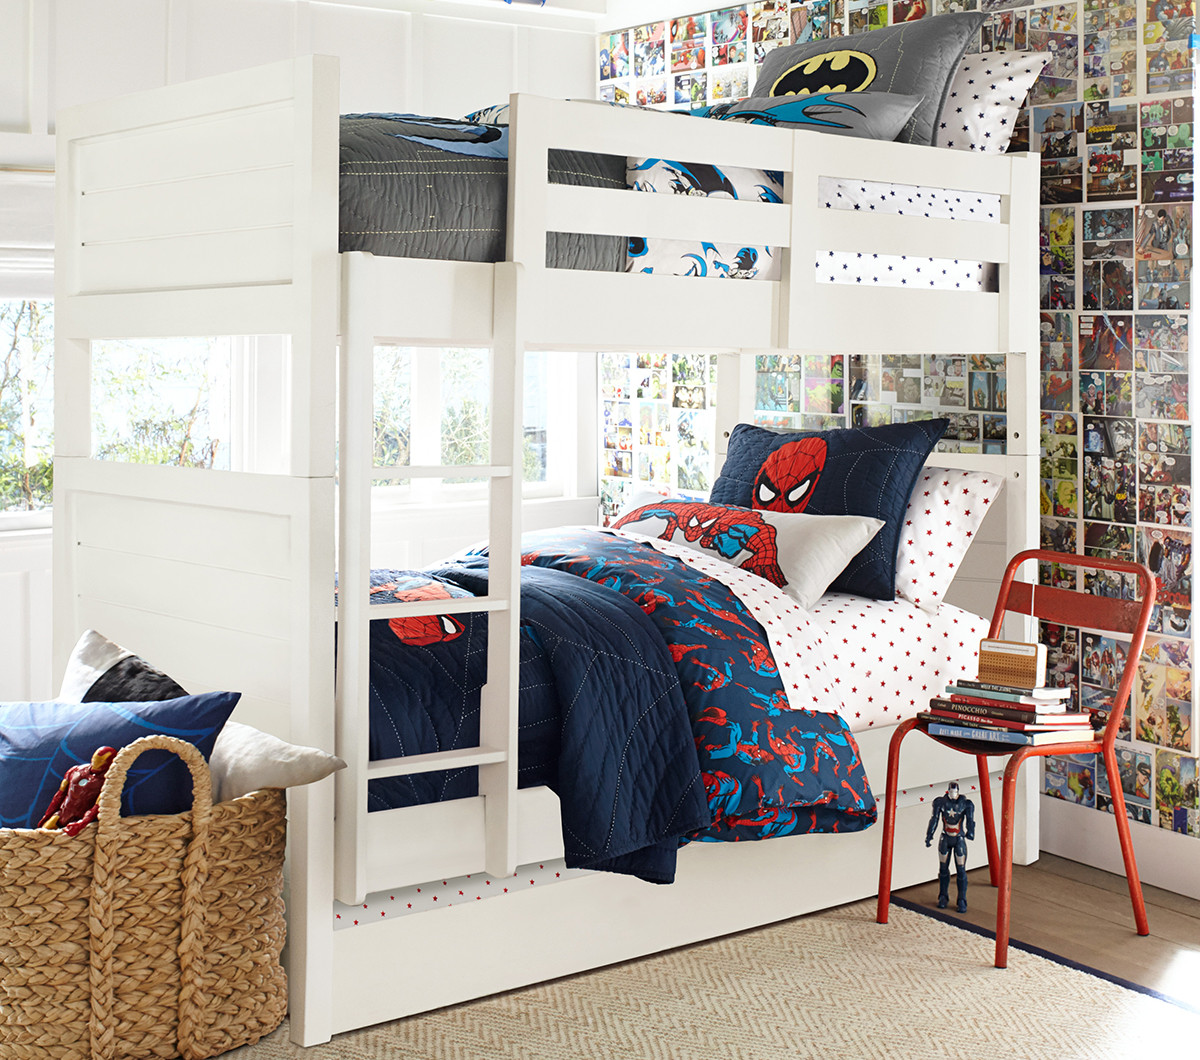 Choosing Boys Bunk Beds For Your Superhero